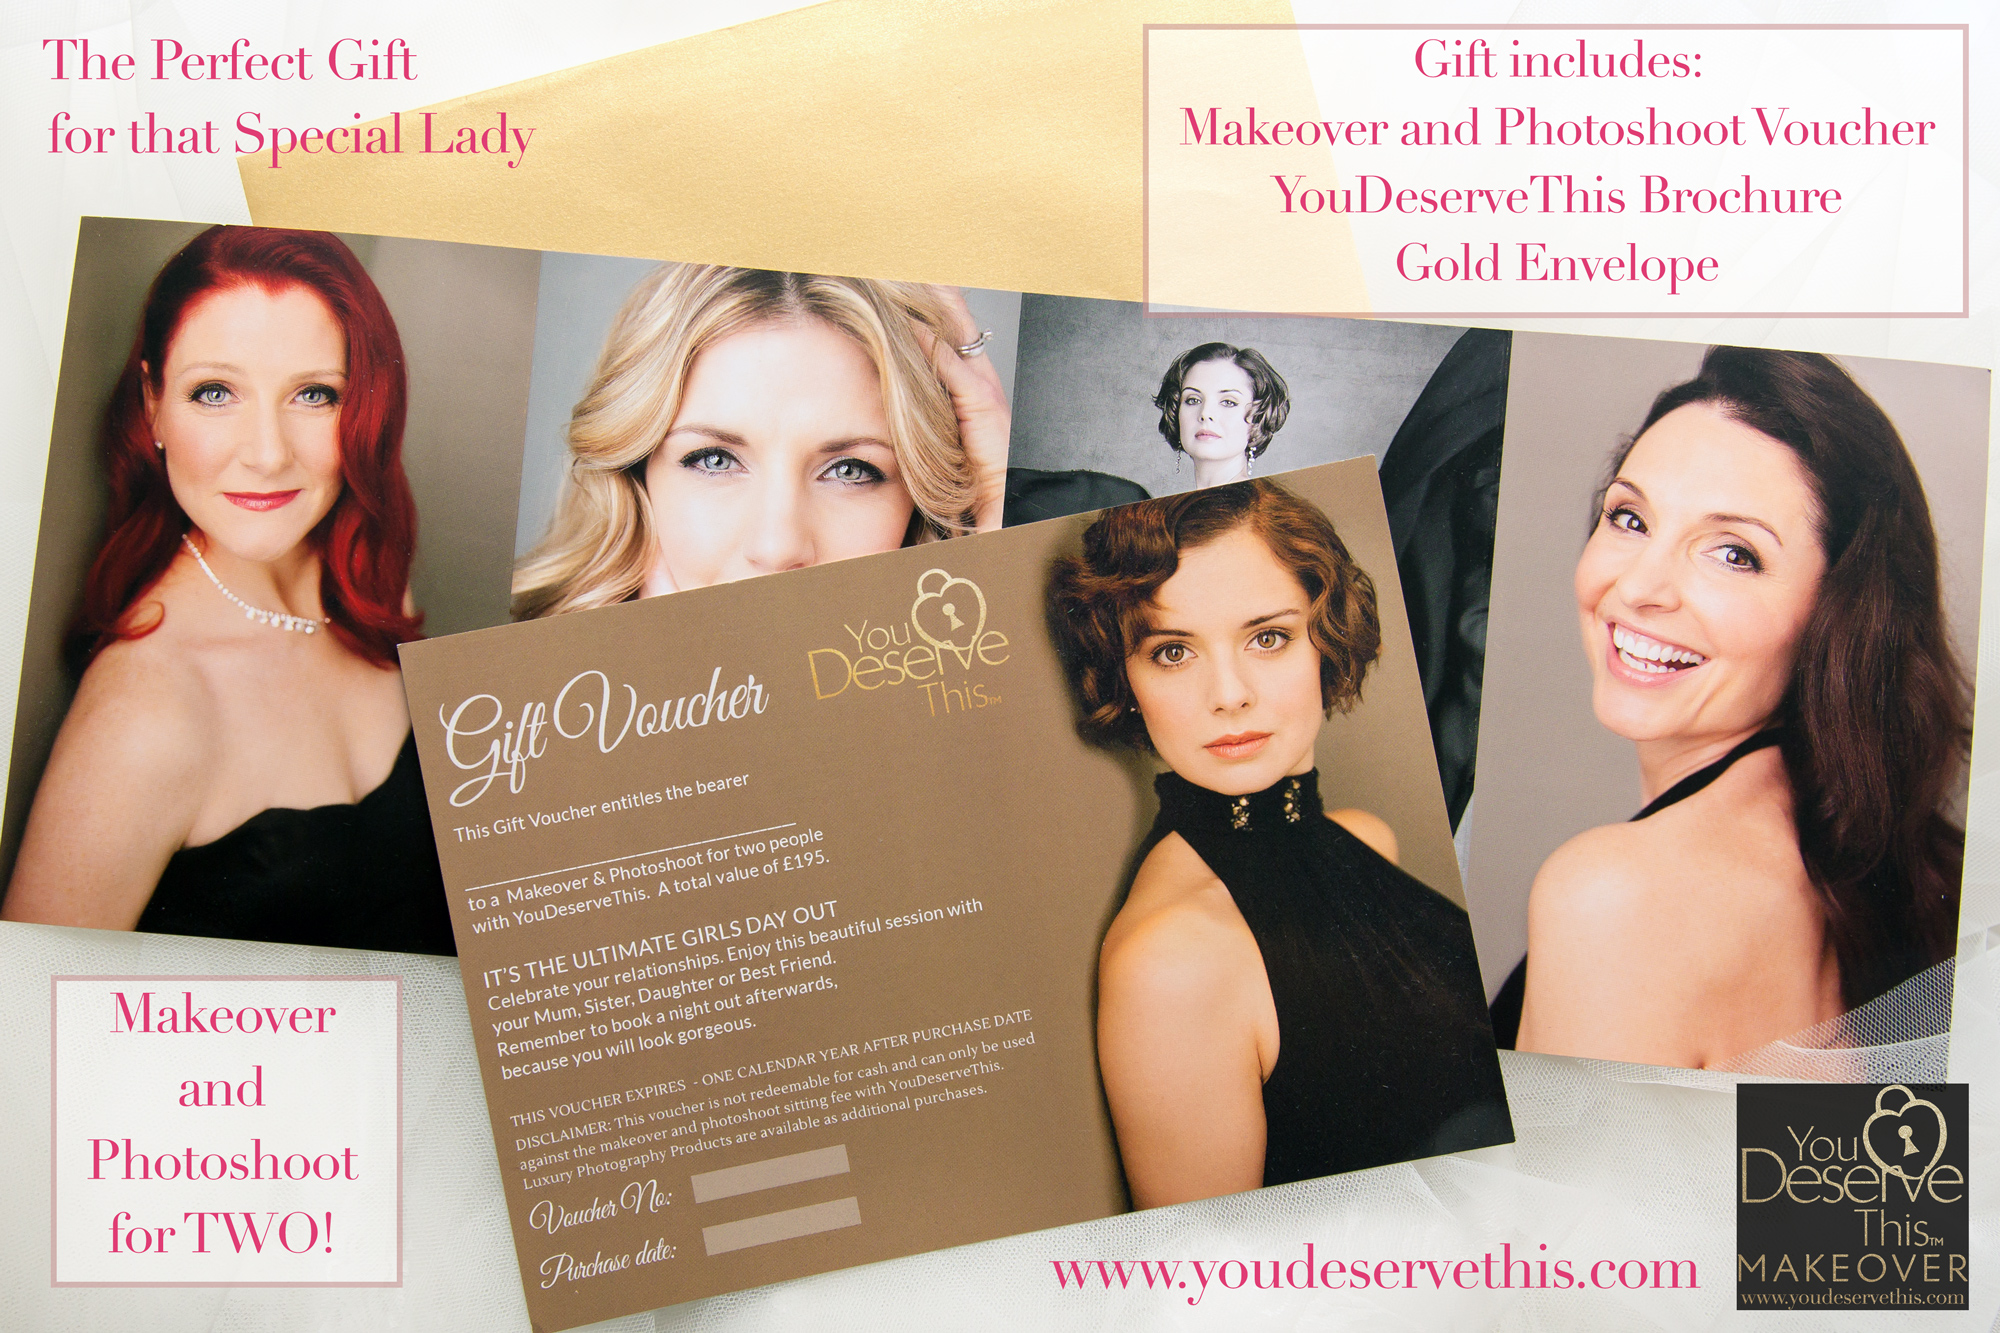 Gift Voucher for Makeover and Photoshoot for 2. The perfect Valentine's Gift for the special lady in your life. Beautiful portraits she is proud to share with family and friends are priceless. Giver her the gift of Beautiful Portraits. You Deserve This Makeover and Photoshoot Studio, Tadley, Hampshire www.youdeservethis.com